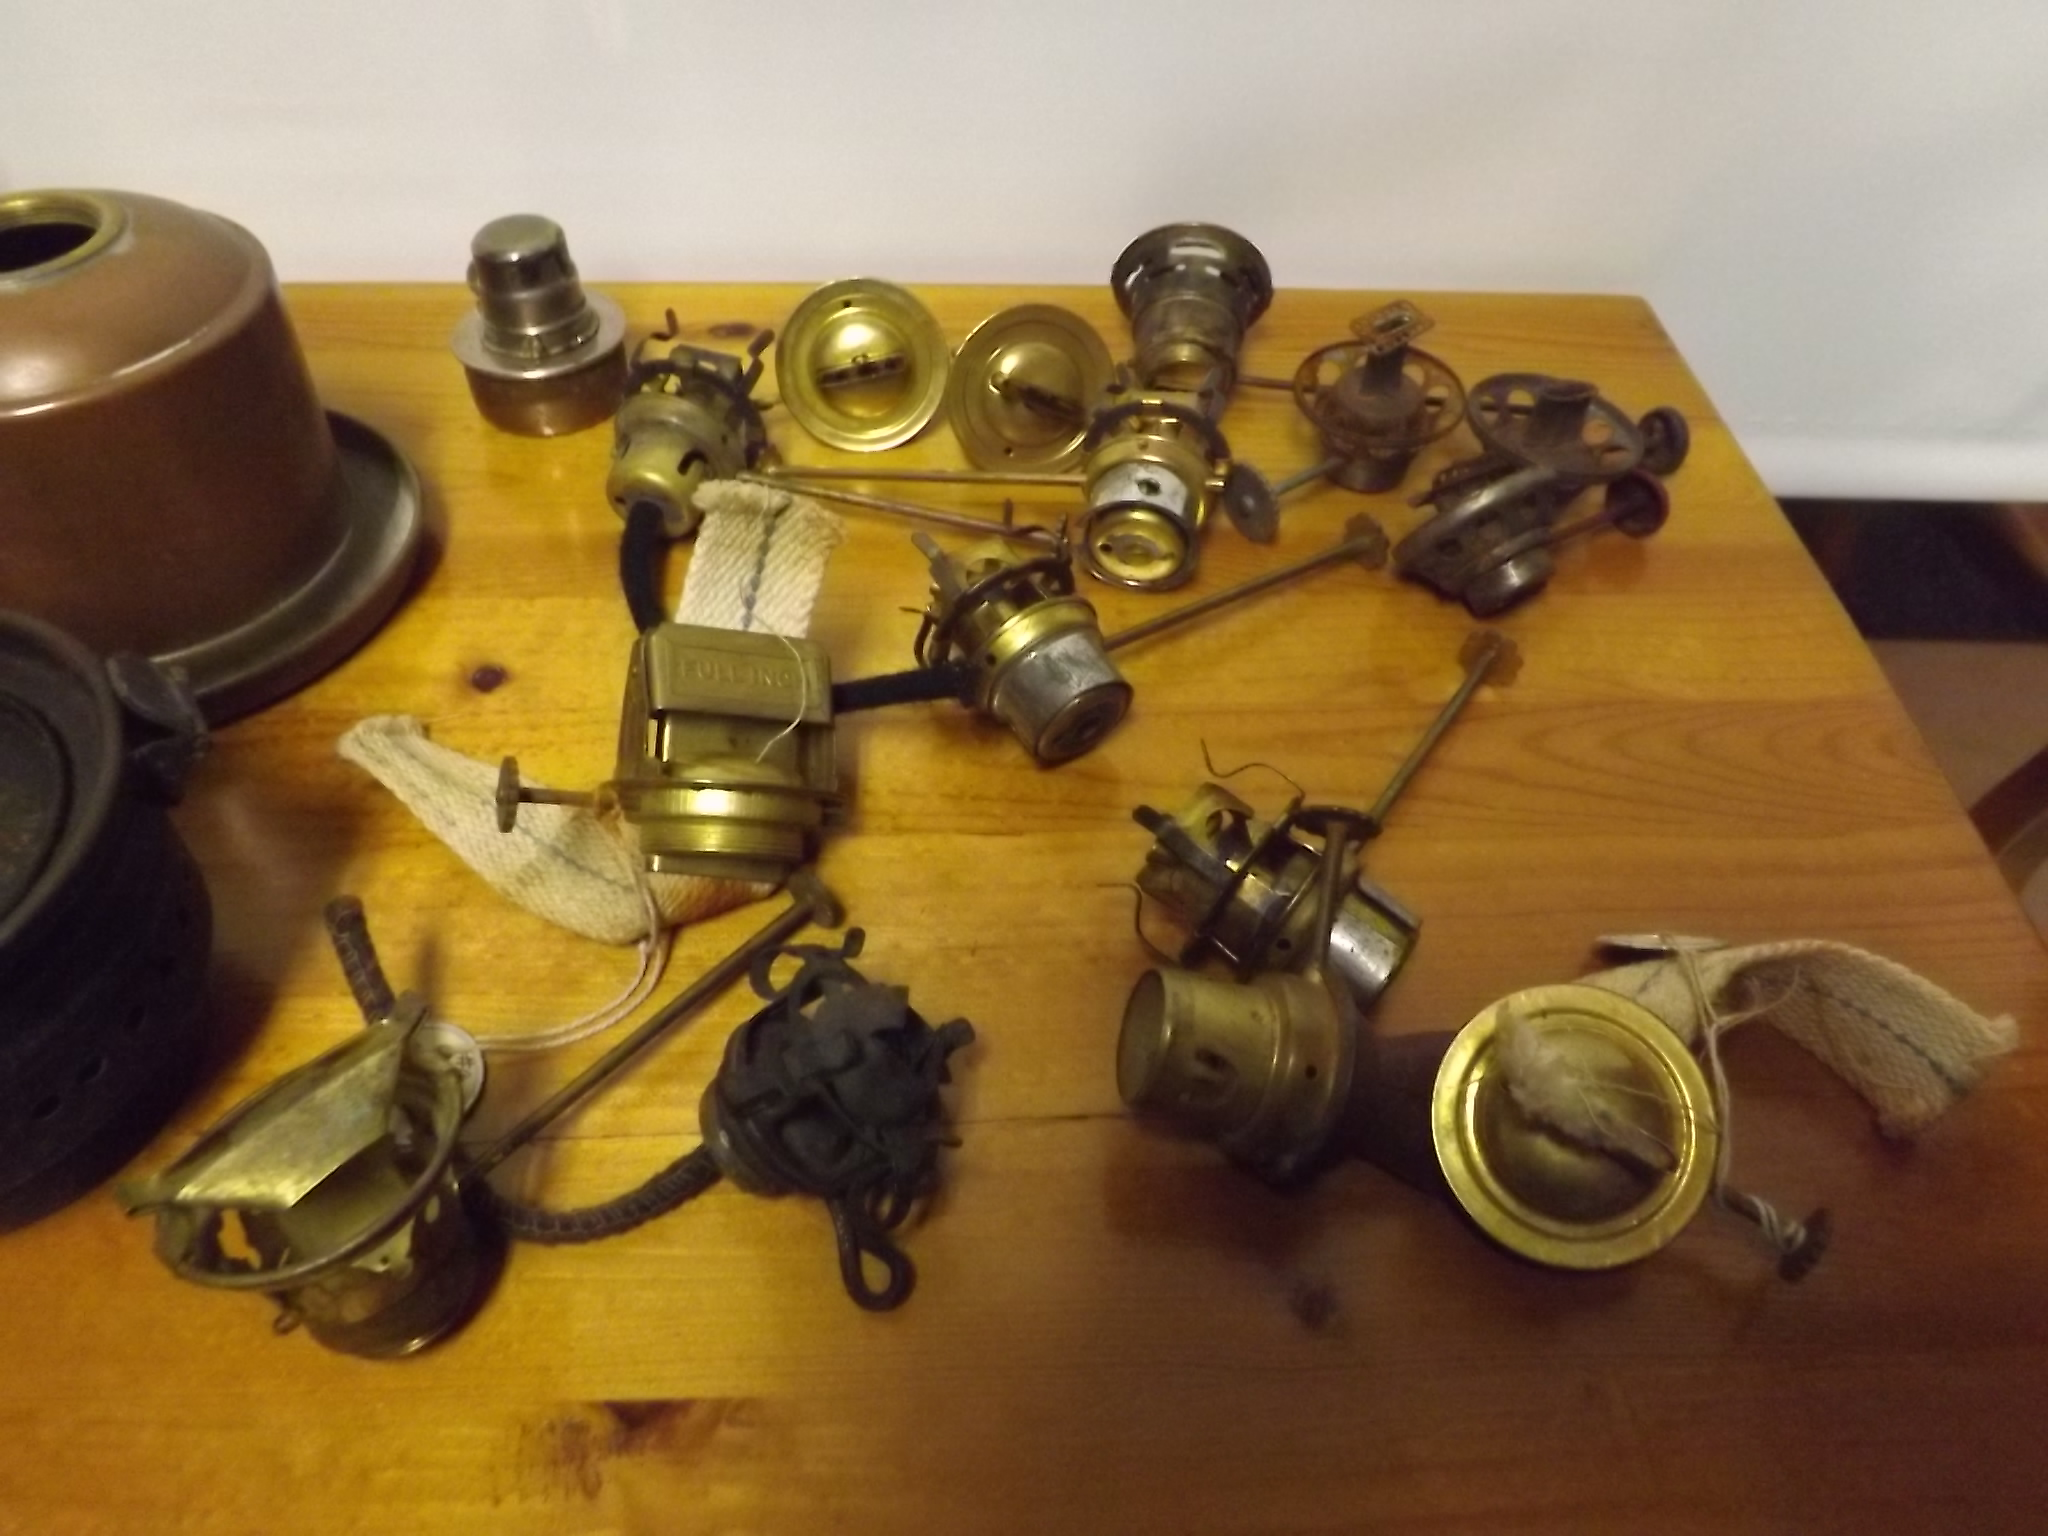 Used lantern burners